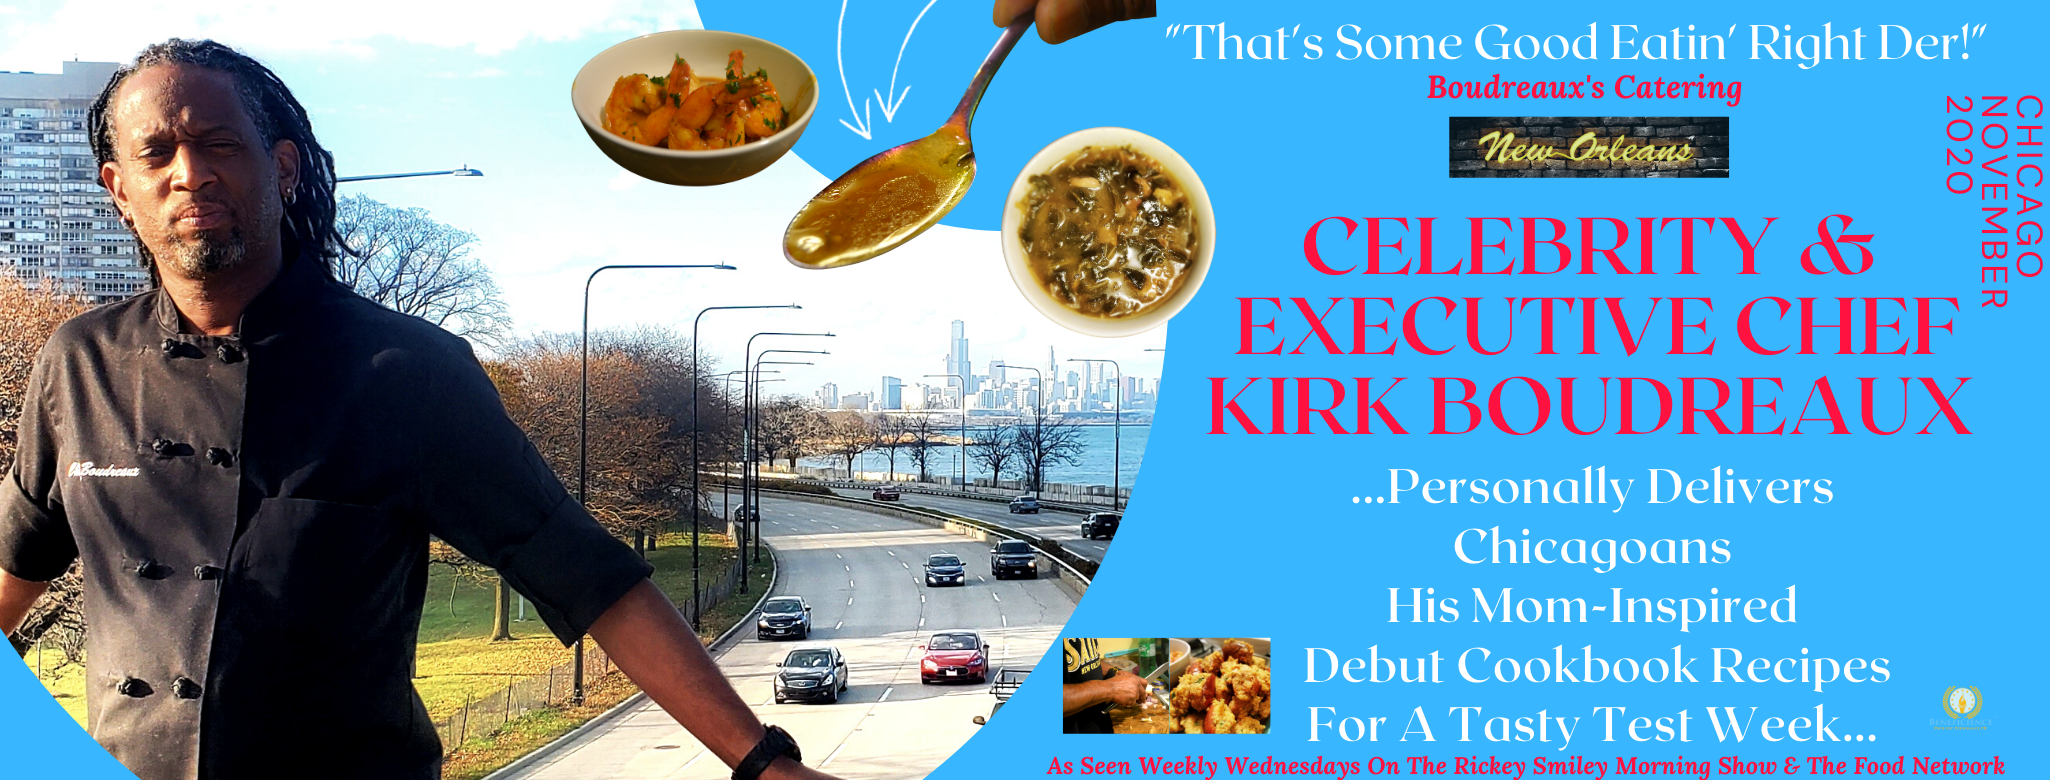 celebrity-executive-chef-kirk-boudreaux-sr-delivers-chicagoans-his-mom-inspired-debut-debut-cookbook-recipes-for-a-tasty-test-week